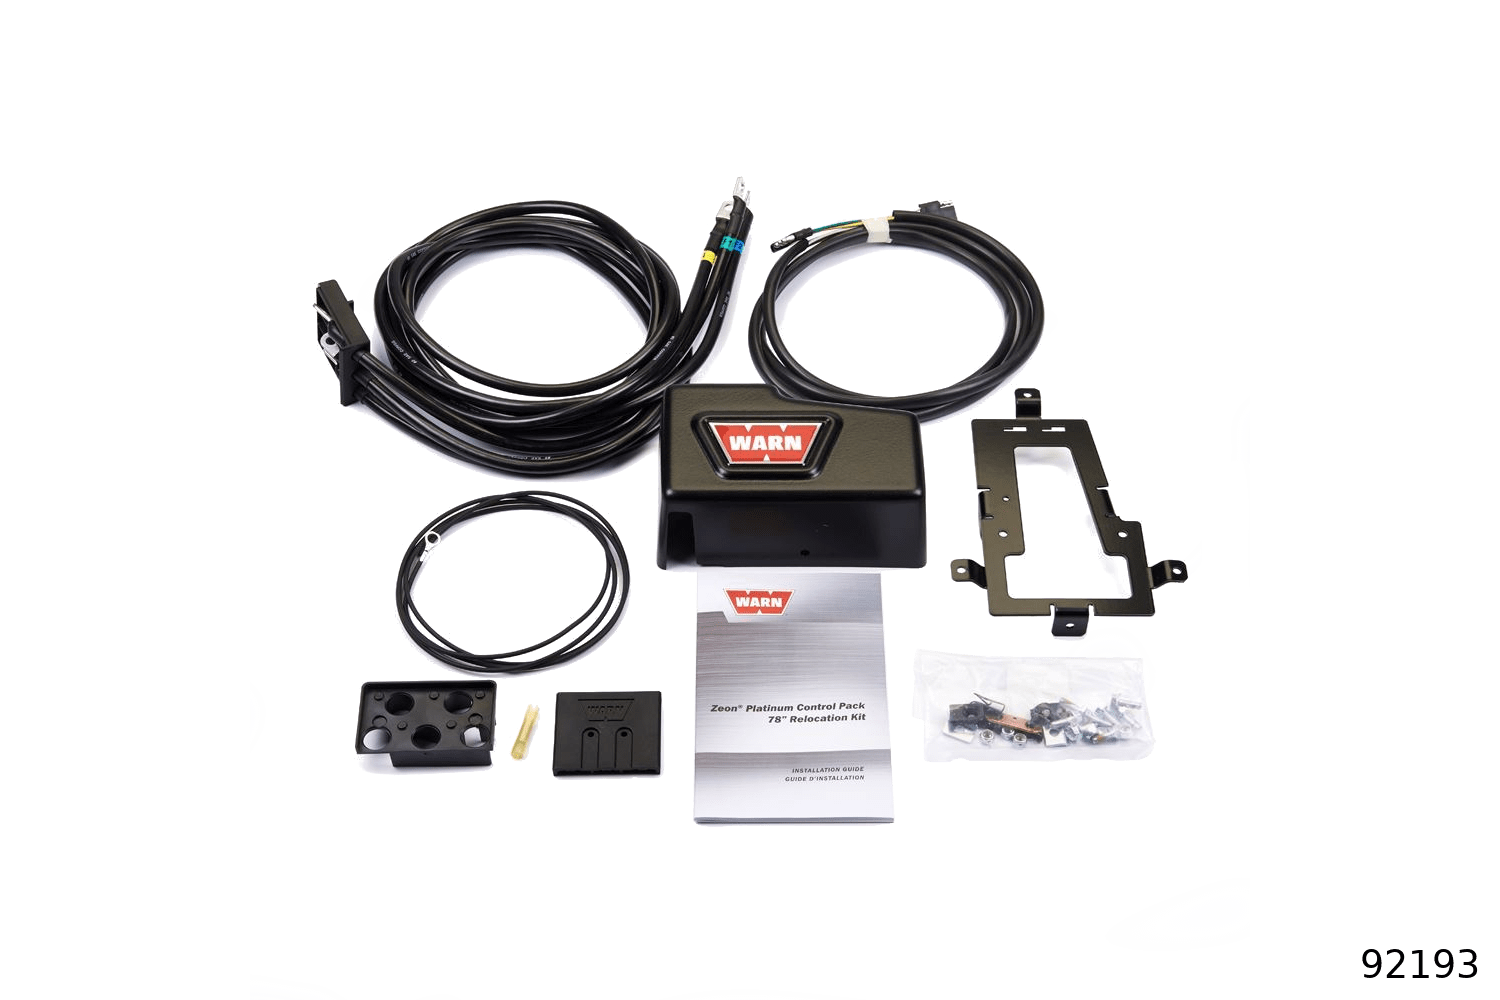 92193-control-pack-relocation-kit_1500